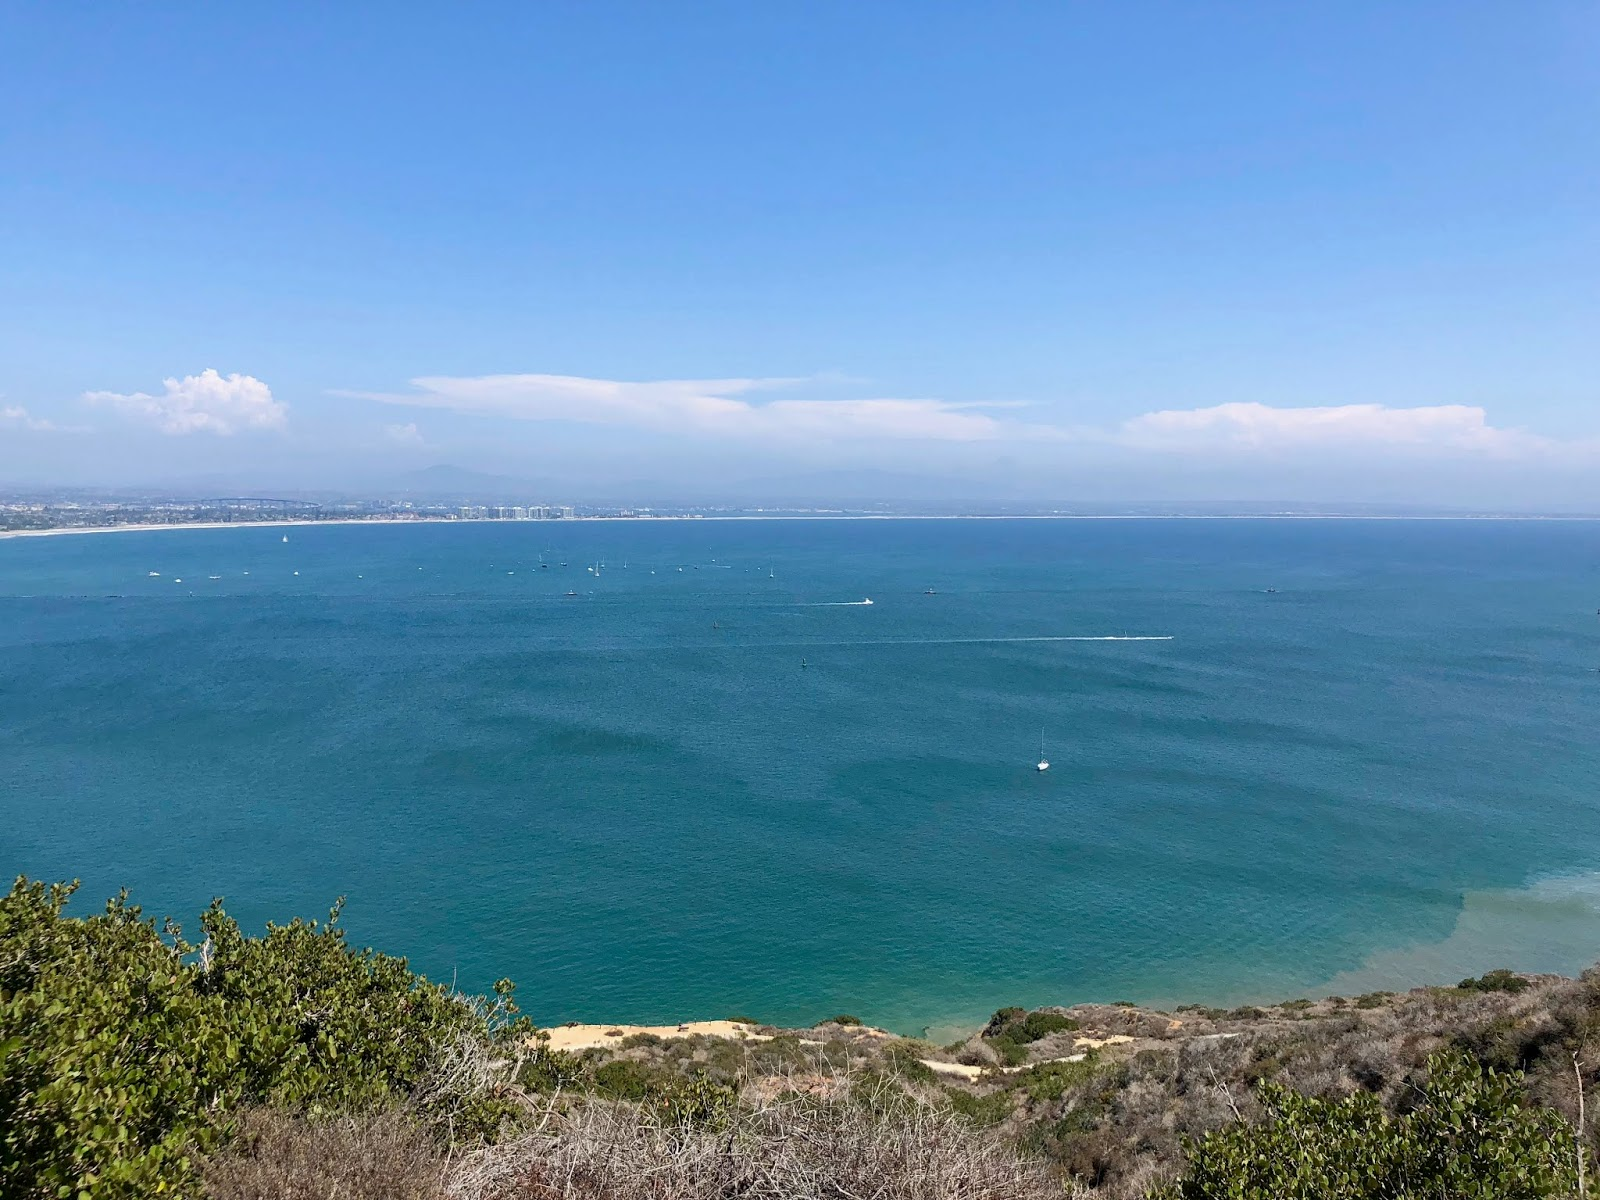 Point Loma, San Diego, California, August 2018